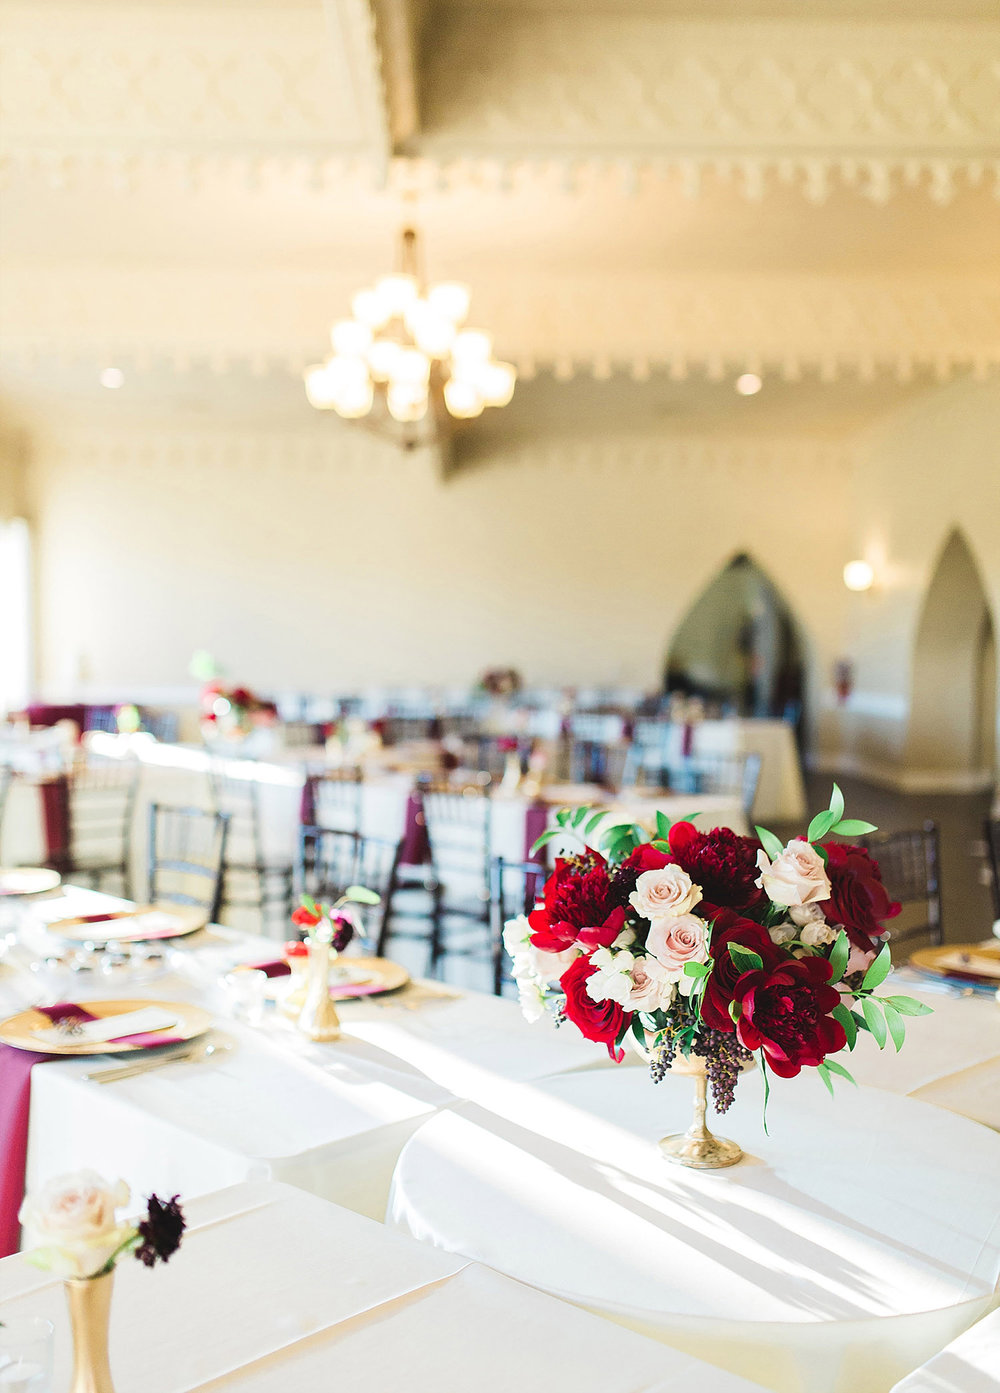 Castle at Rockwall wedding with X tables and red flowers